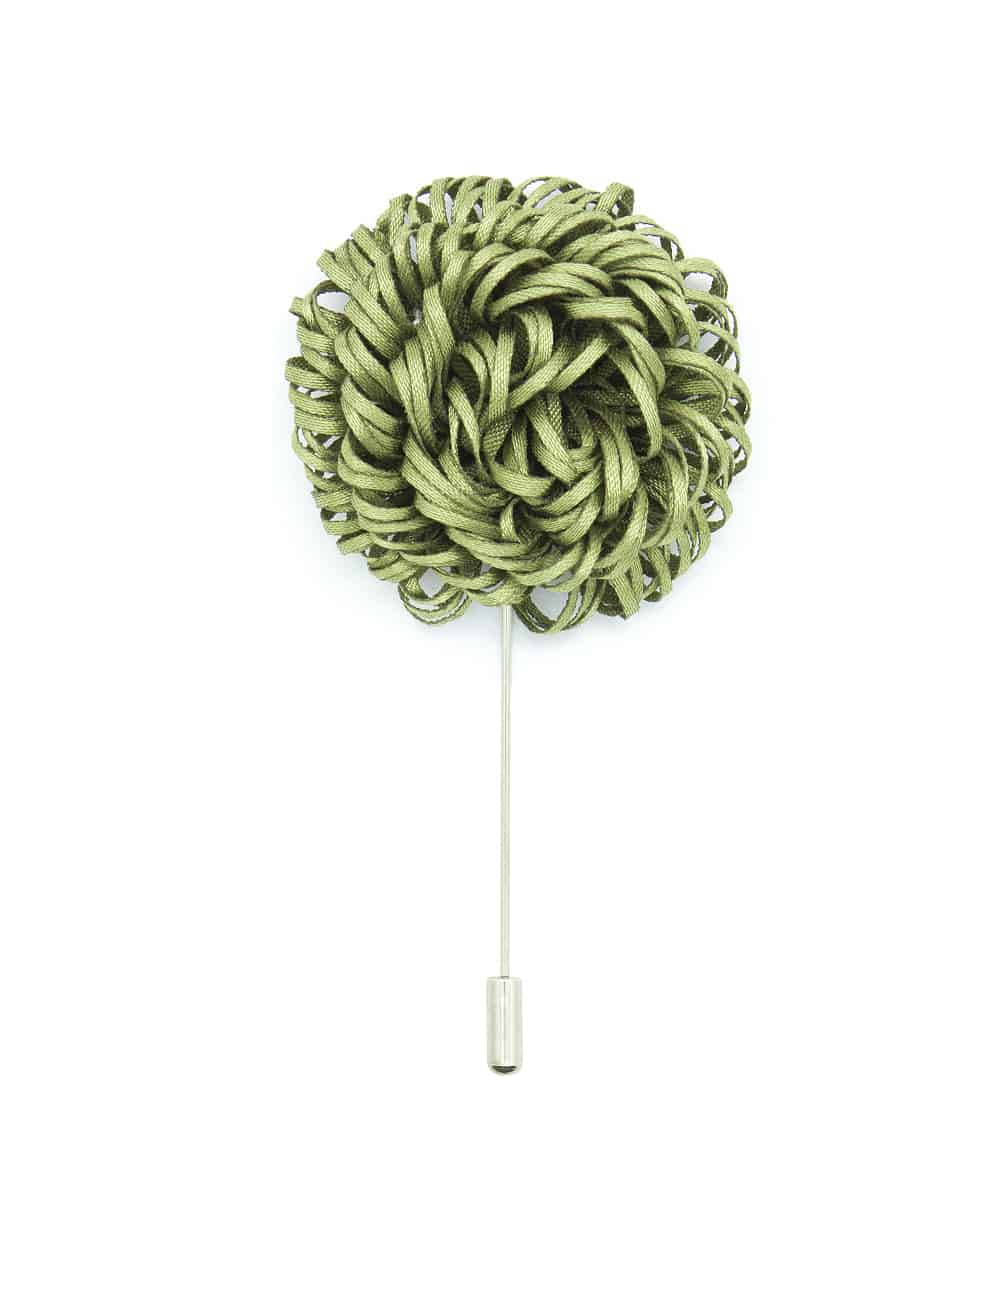 Olive Green Twirl Floral Lapel Pin LP48.10